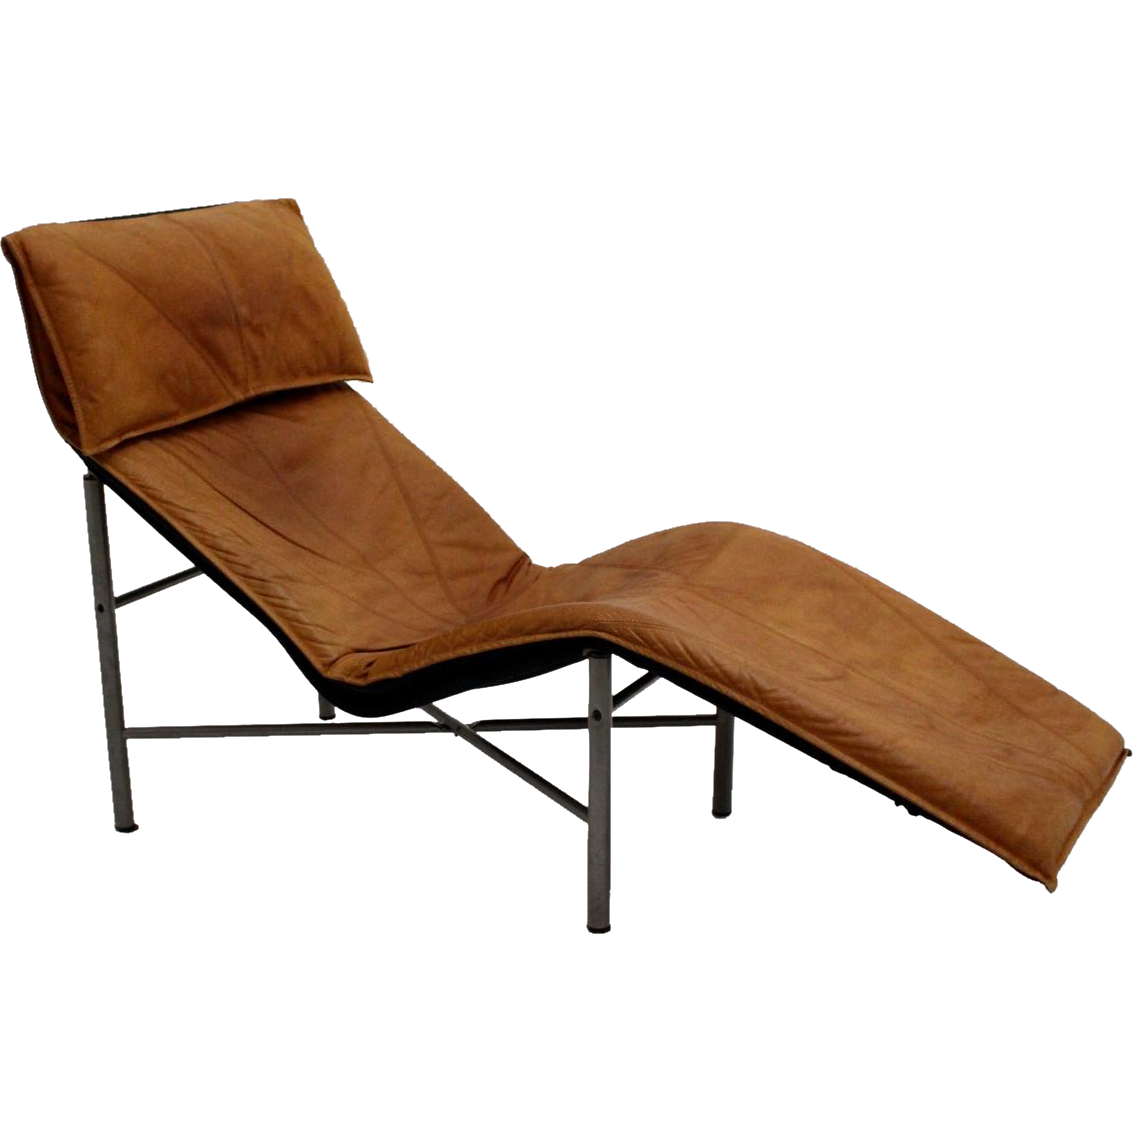 Cognac leather chaise longue by lord bjorklund sweden for Annabelle chaise